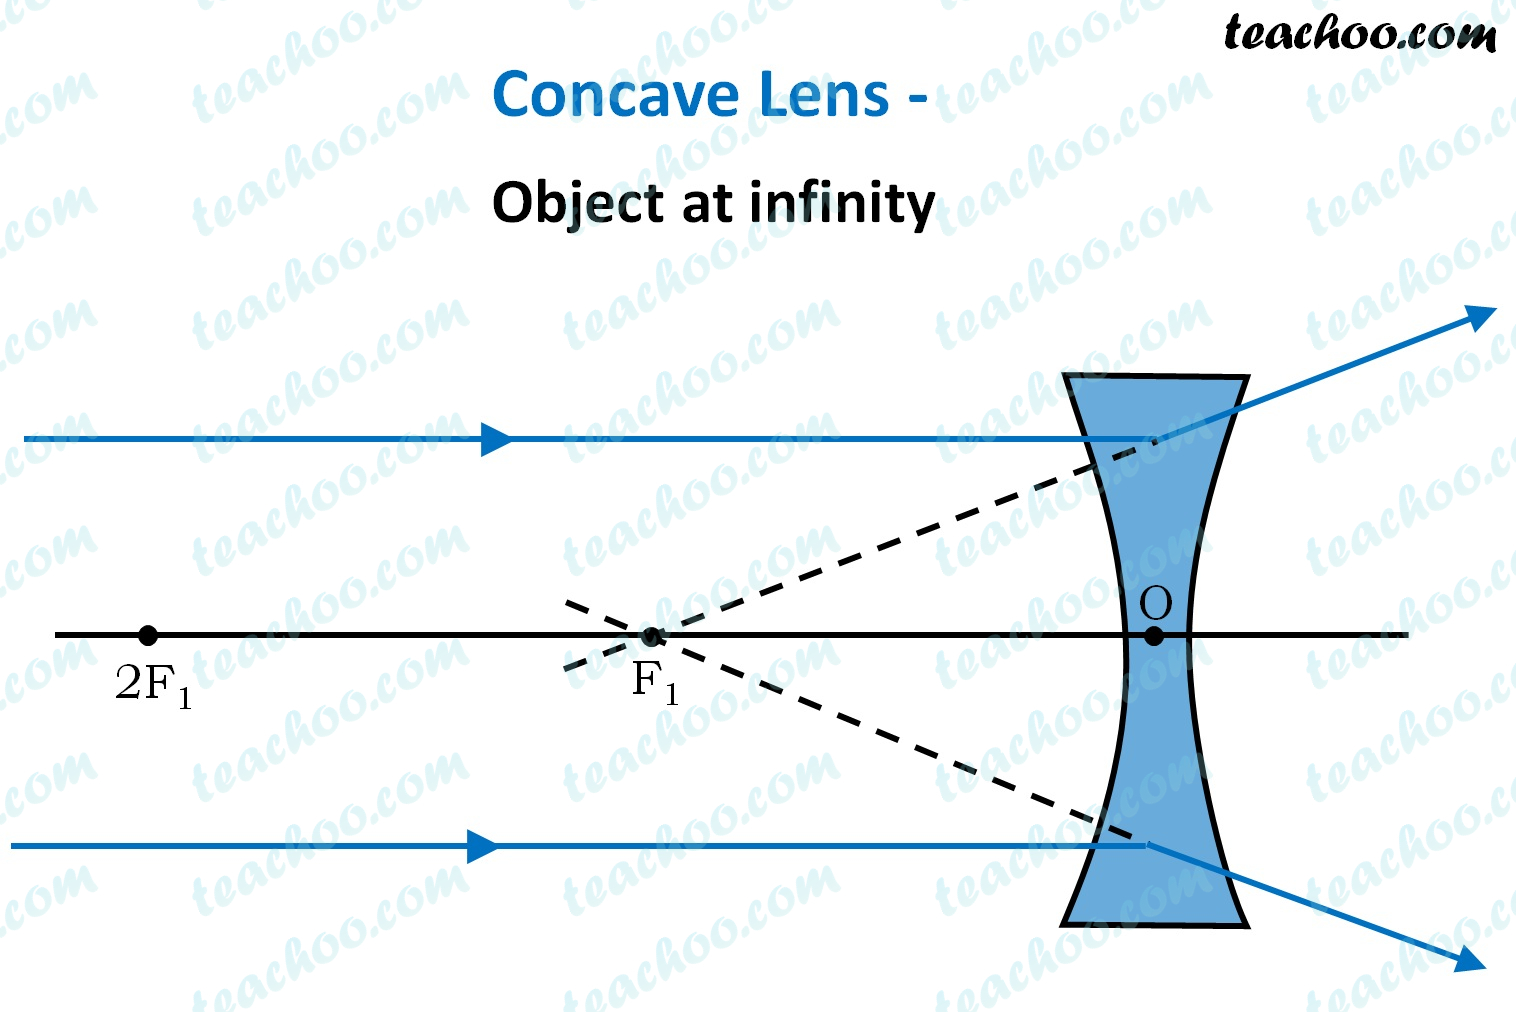 concave-lens-object-at-infinity---ray-diagram---teachoo (1).jpg